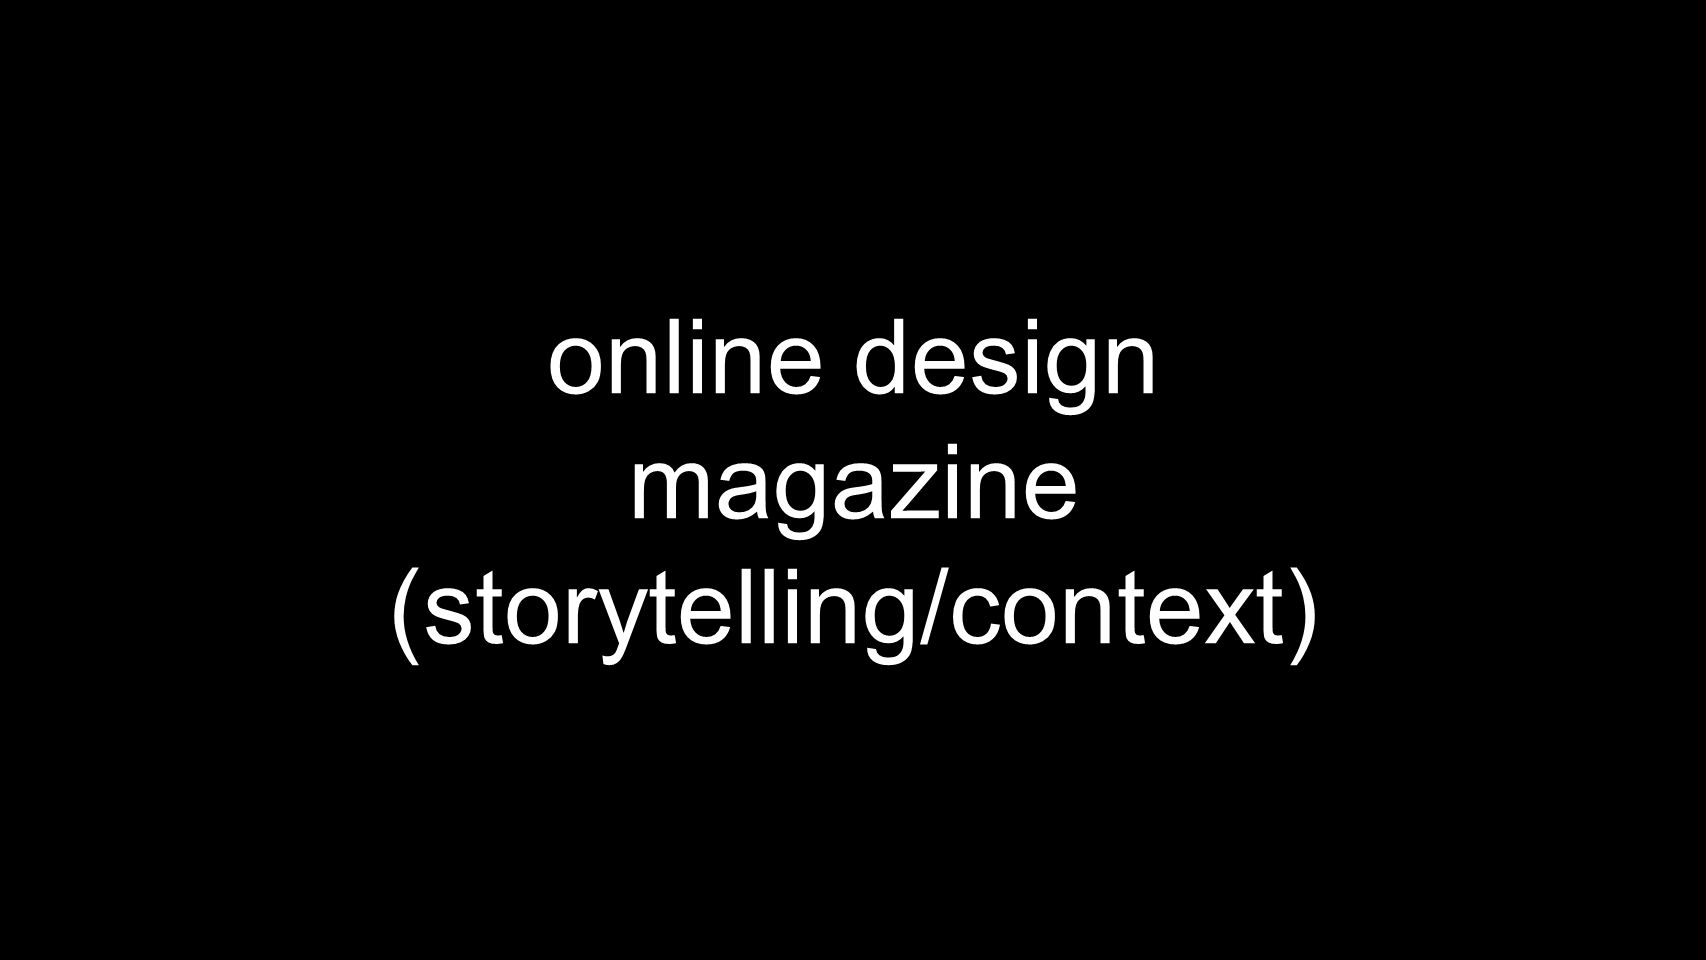 online design magazine (storytelling/context)